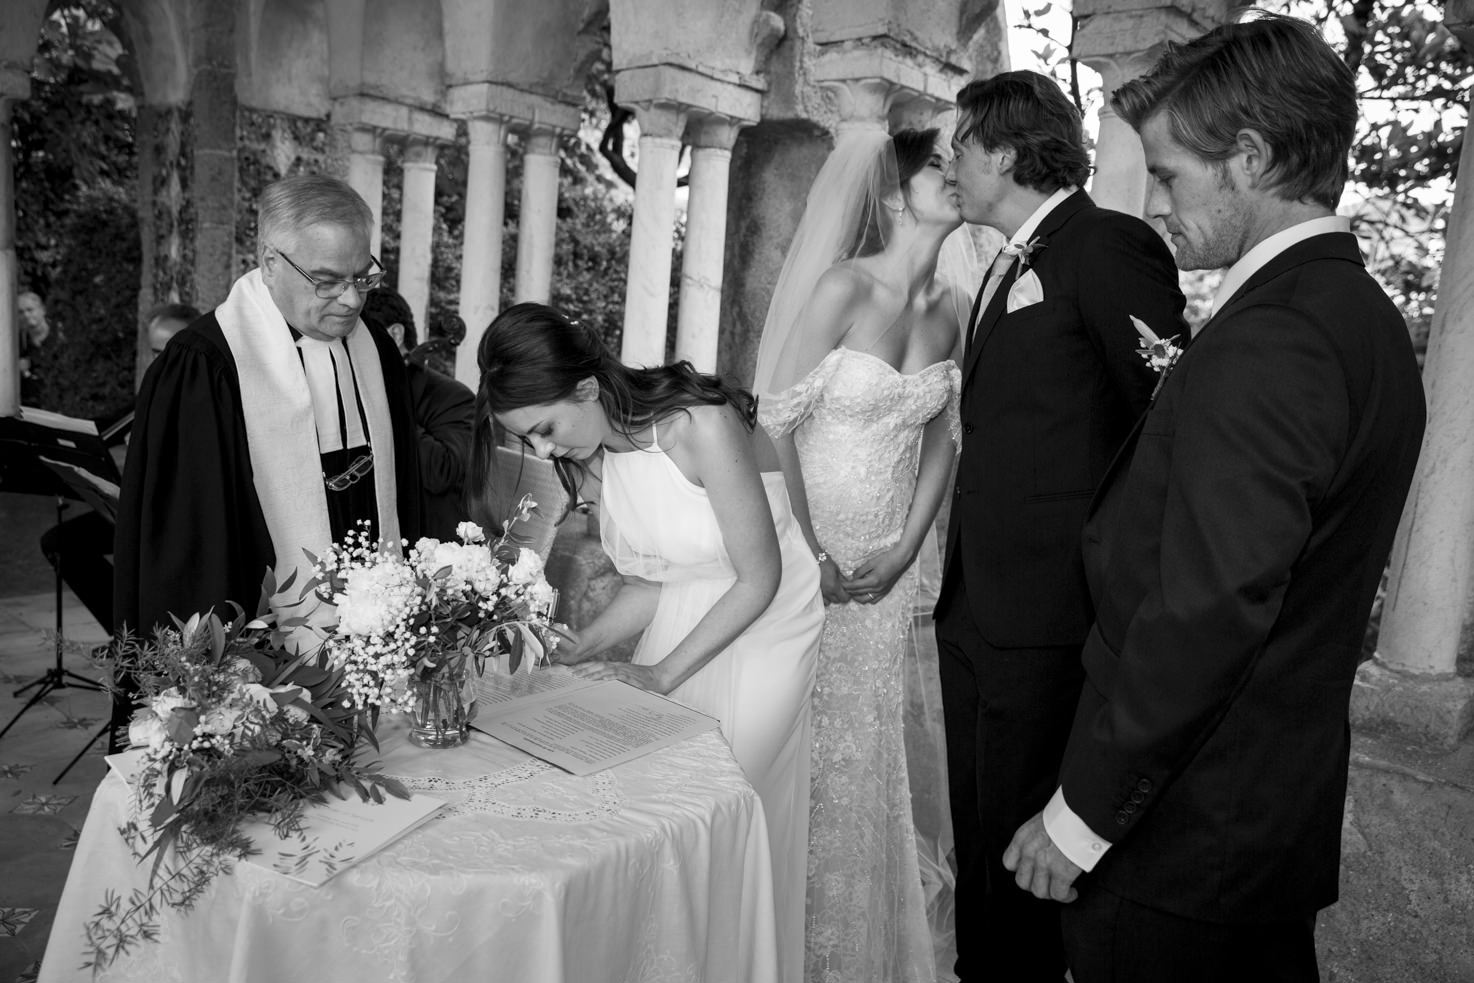 Protestant wedding in Italy